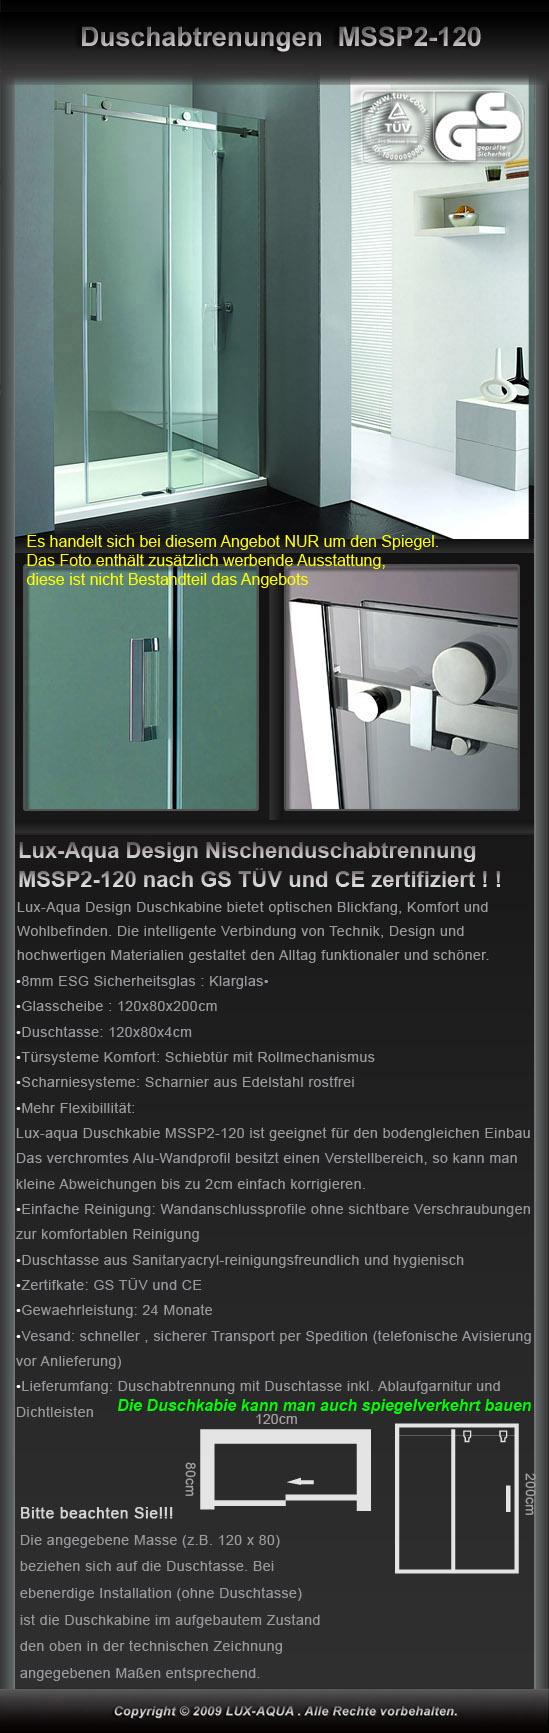 pendelt r dusche bauforum auf. Black Bedroom Furniture Sets. Home Design Ideas